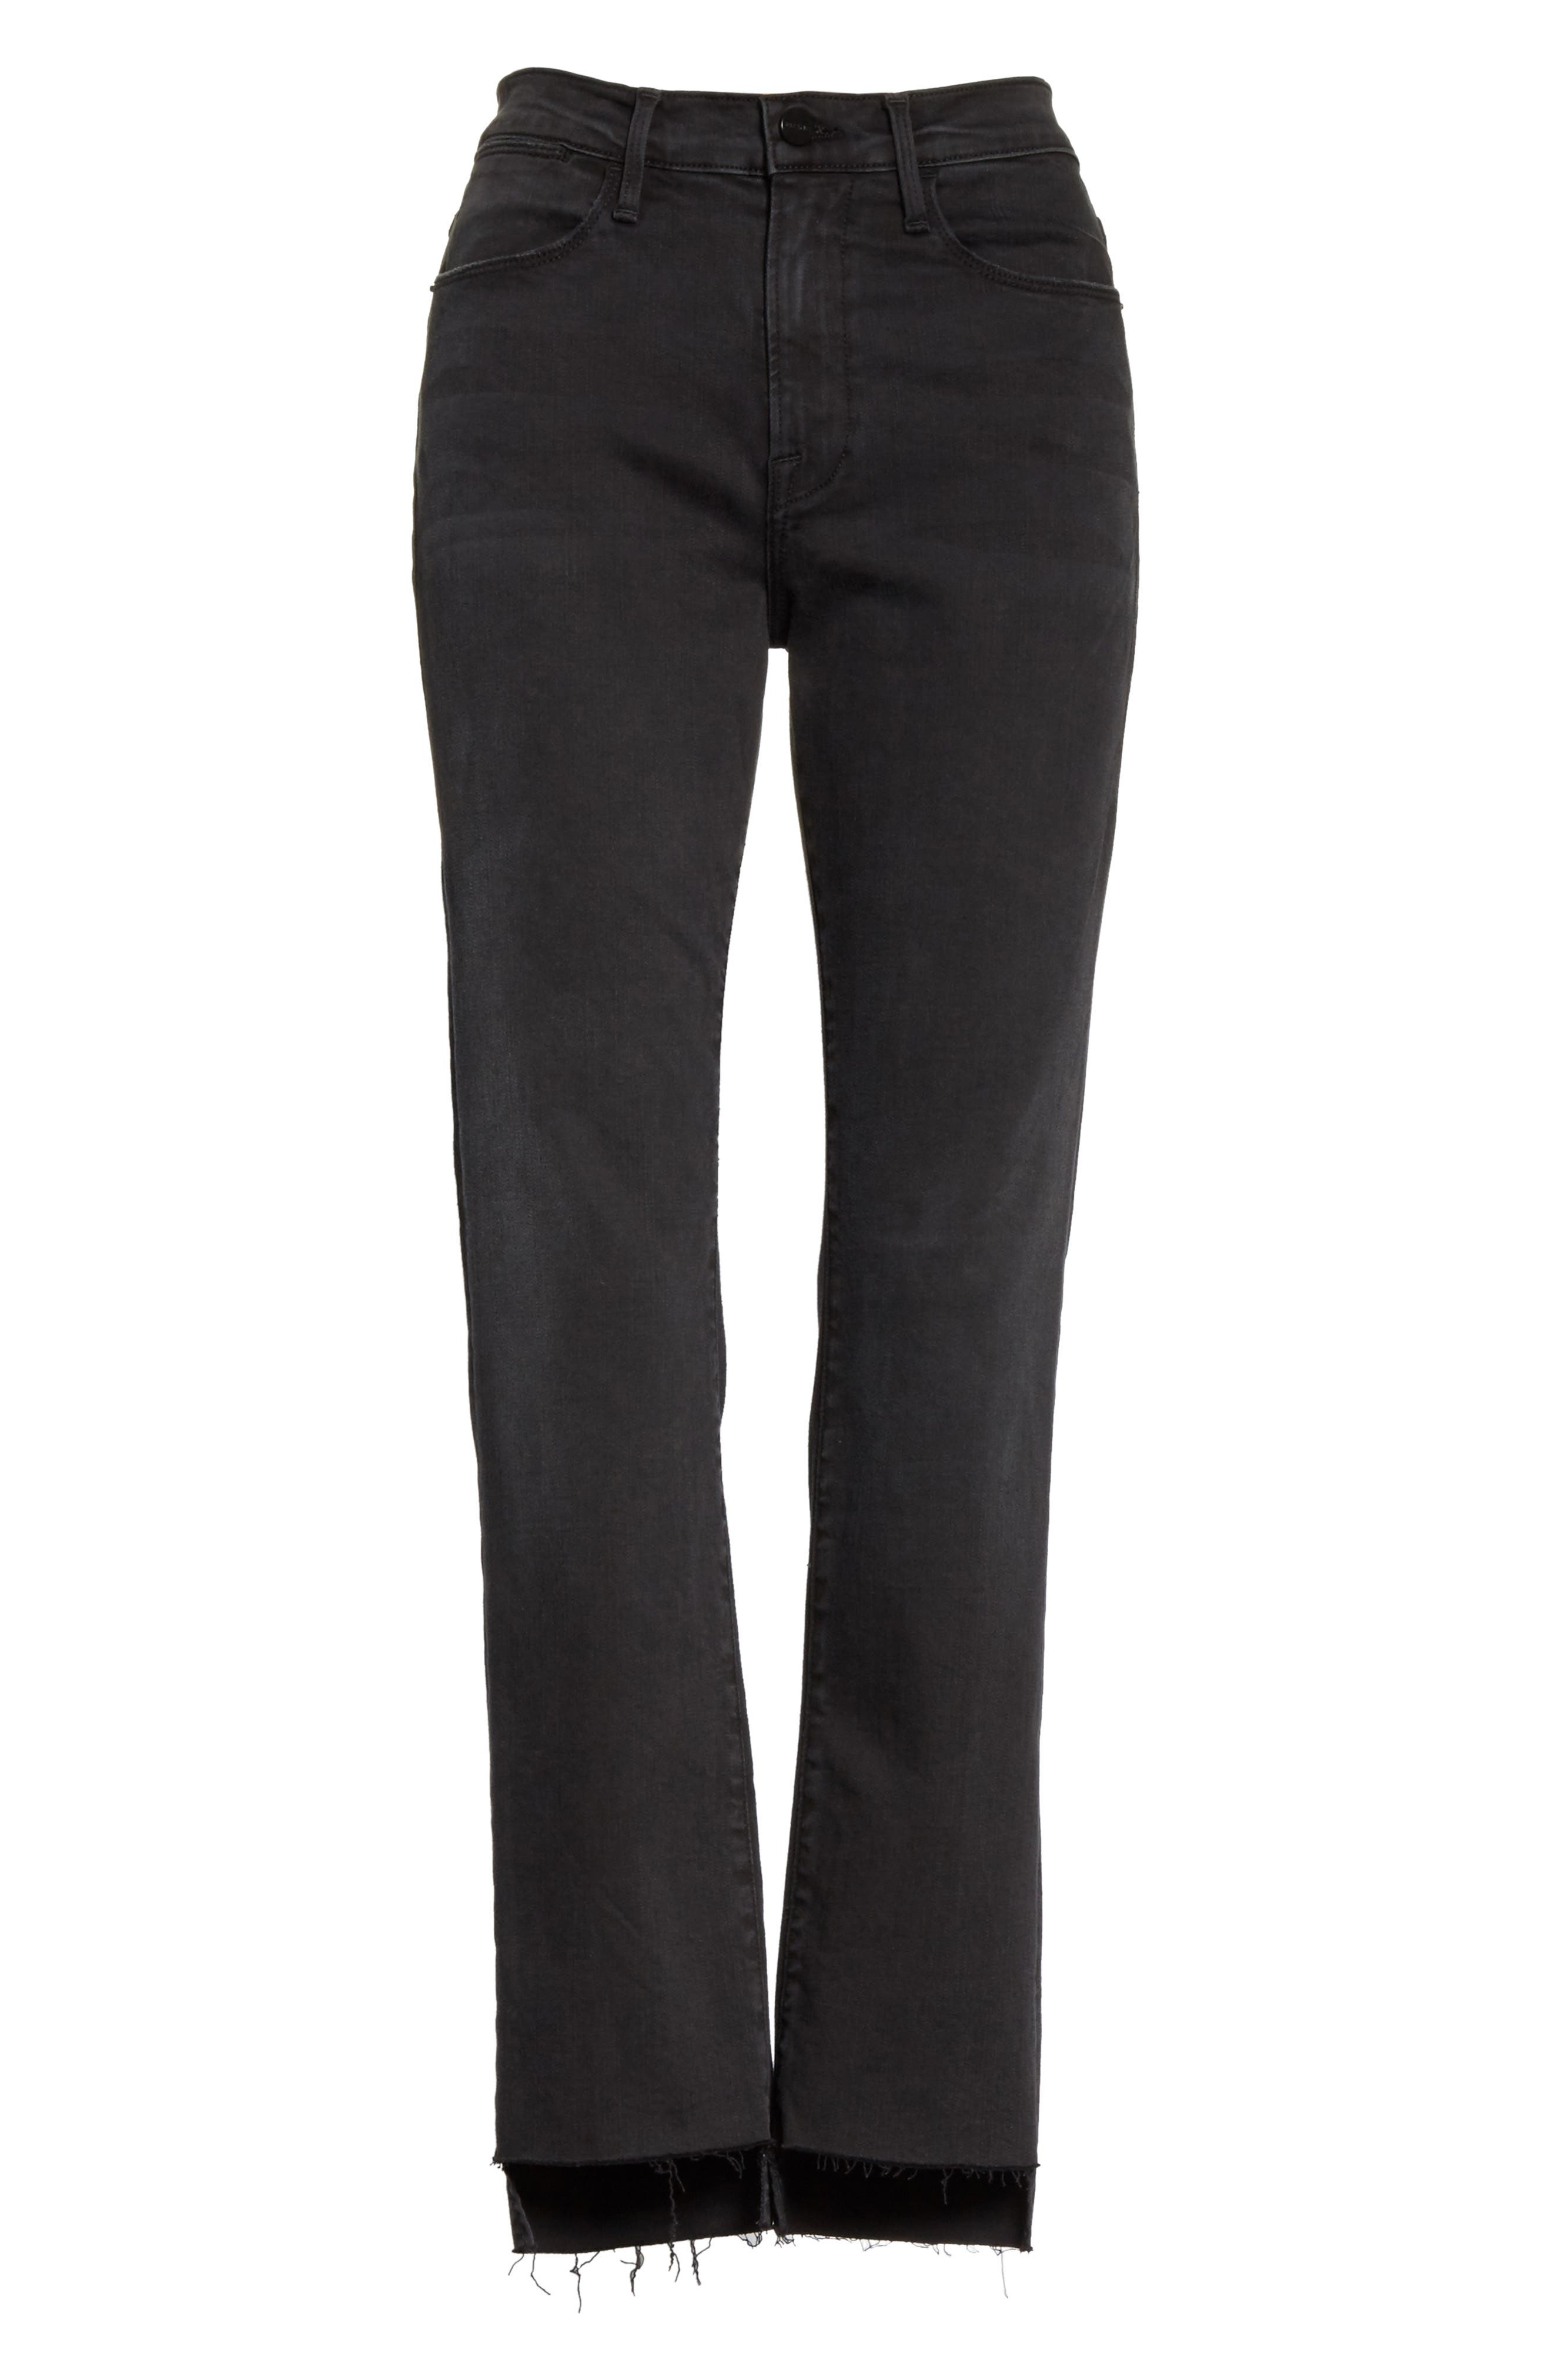 Le High Raw Stagger Straight Jeans,                             Alternate thumbnail 7, color,                             001